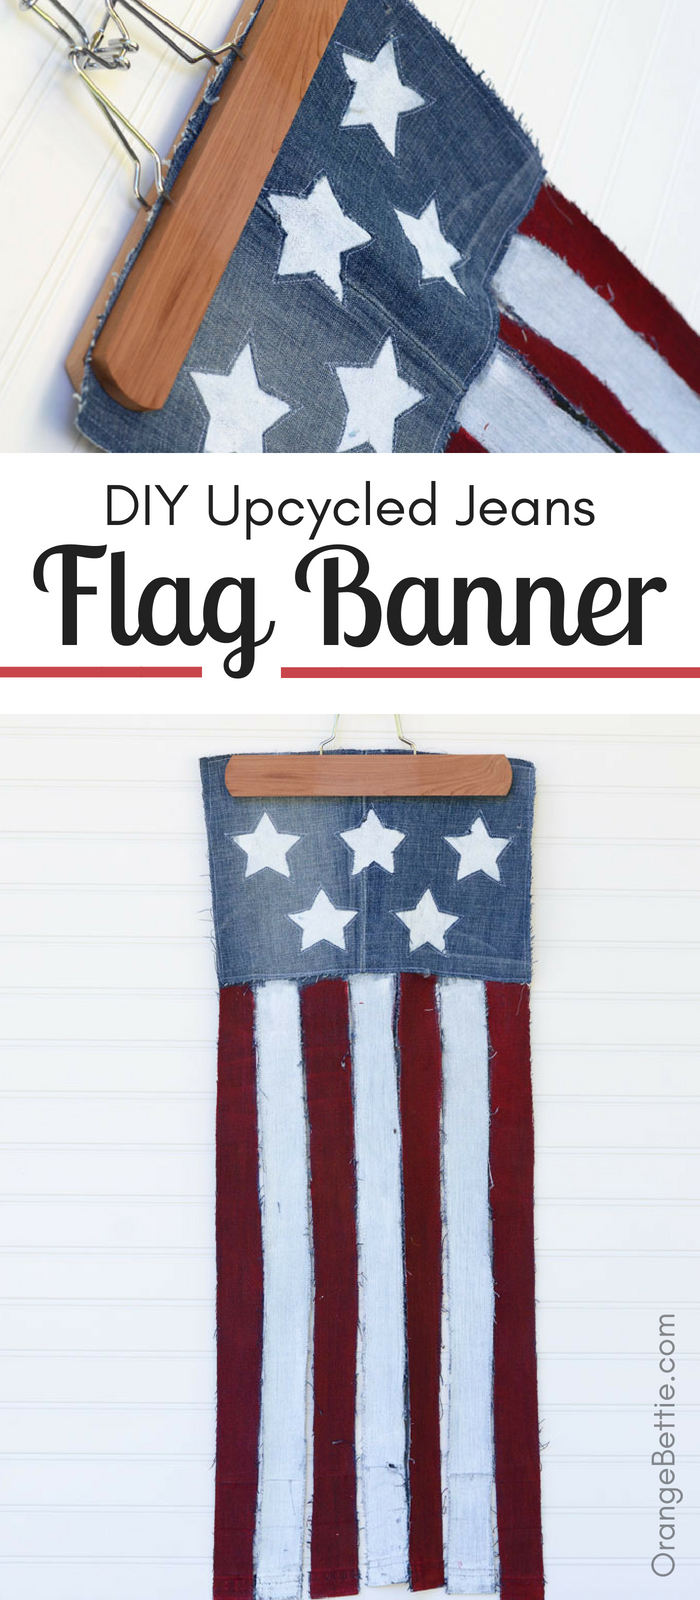 Turn an old pair of jeans into a cute patriotic flag banner for 4th of July or any other patriotic holiday!  I don't know if there's any fabric that's more perfect for a patriotic design than denim, particularly upcycled denim that's a little distressed here and there.